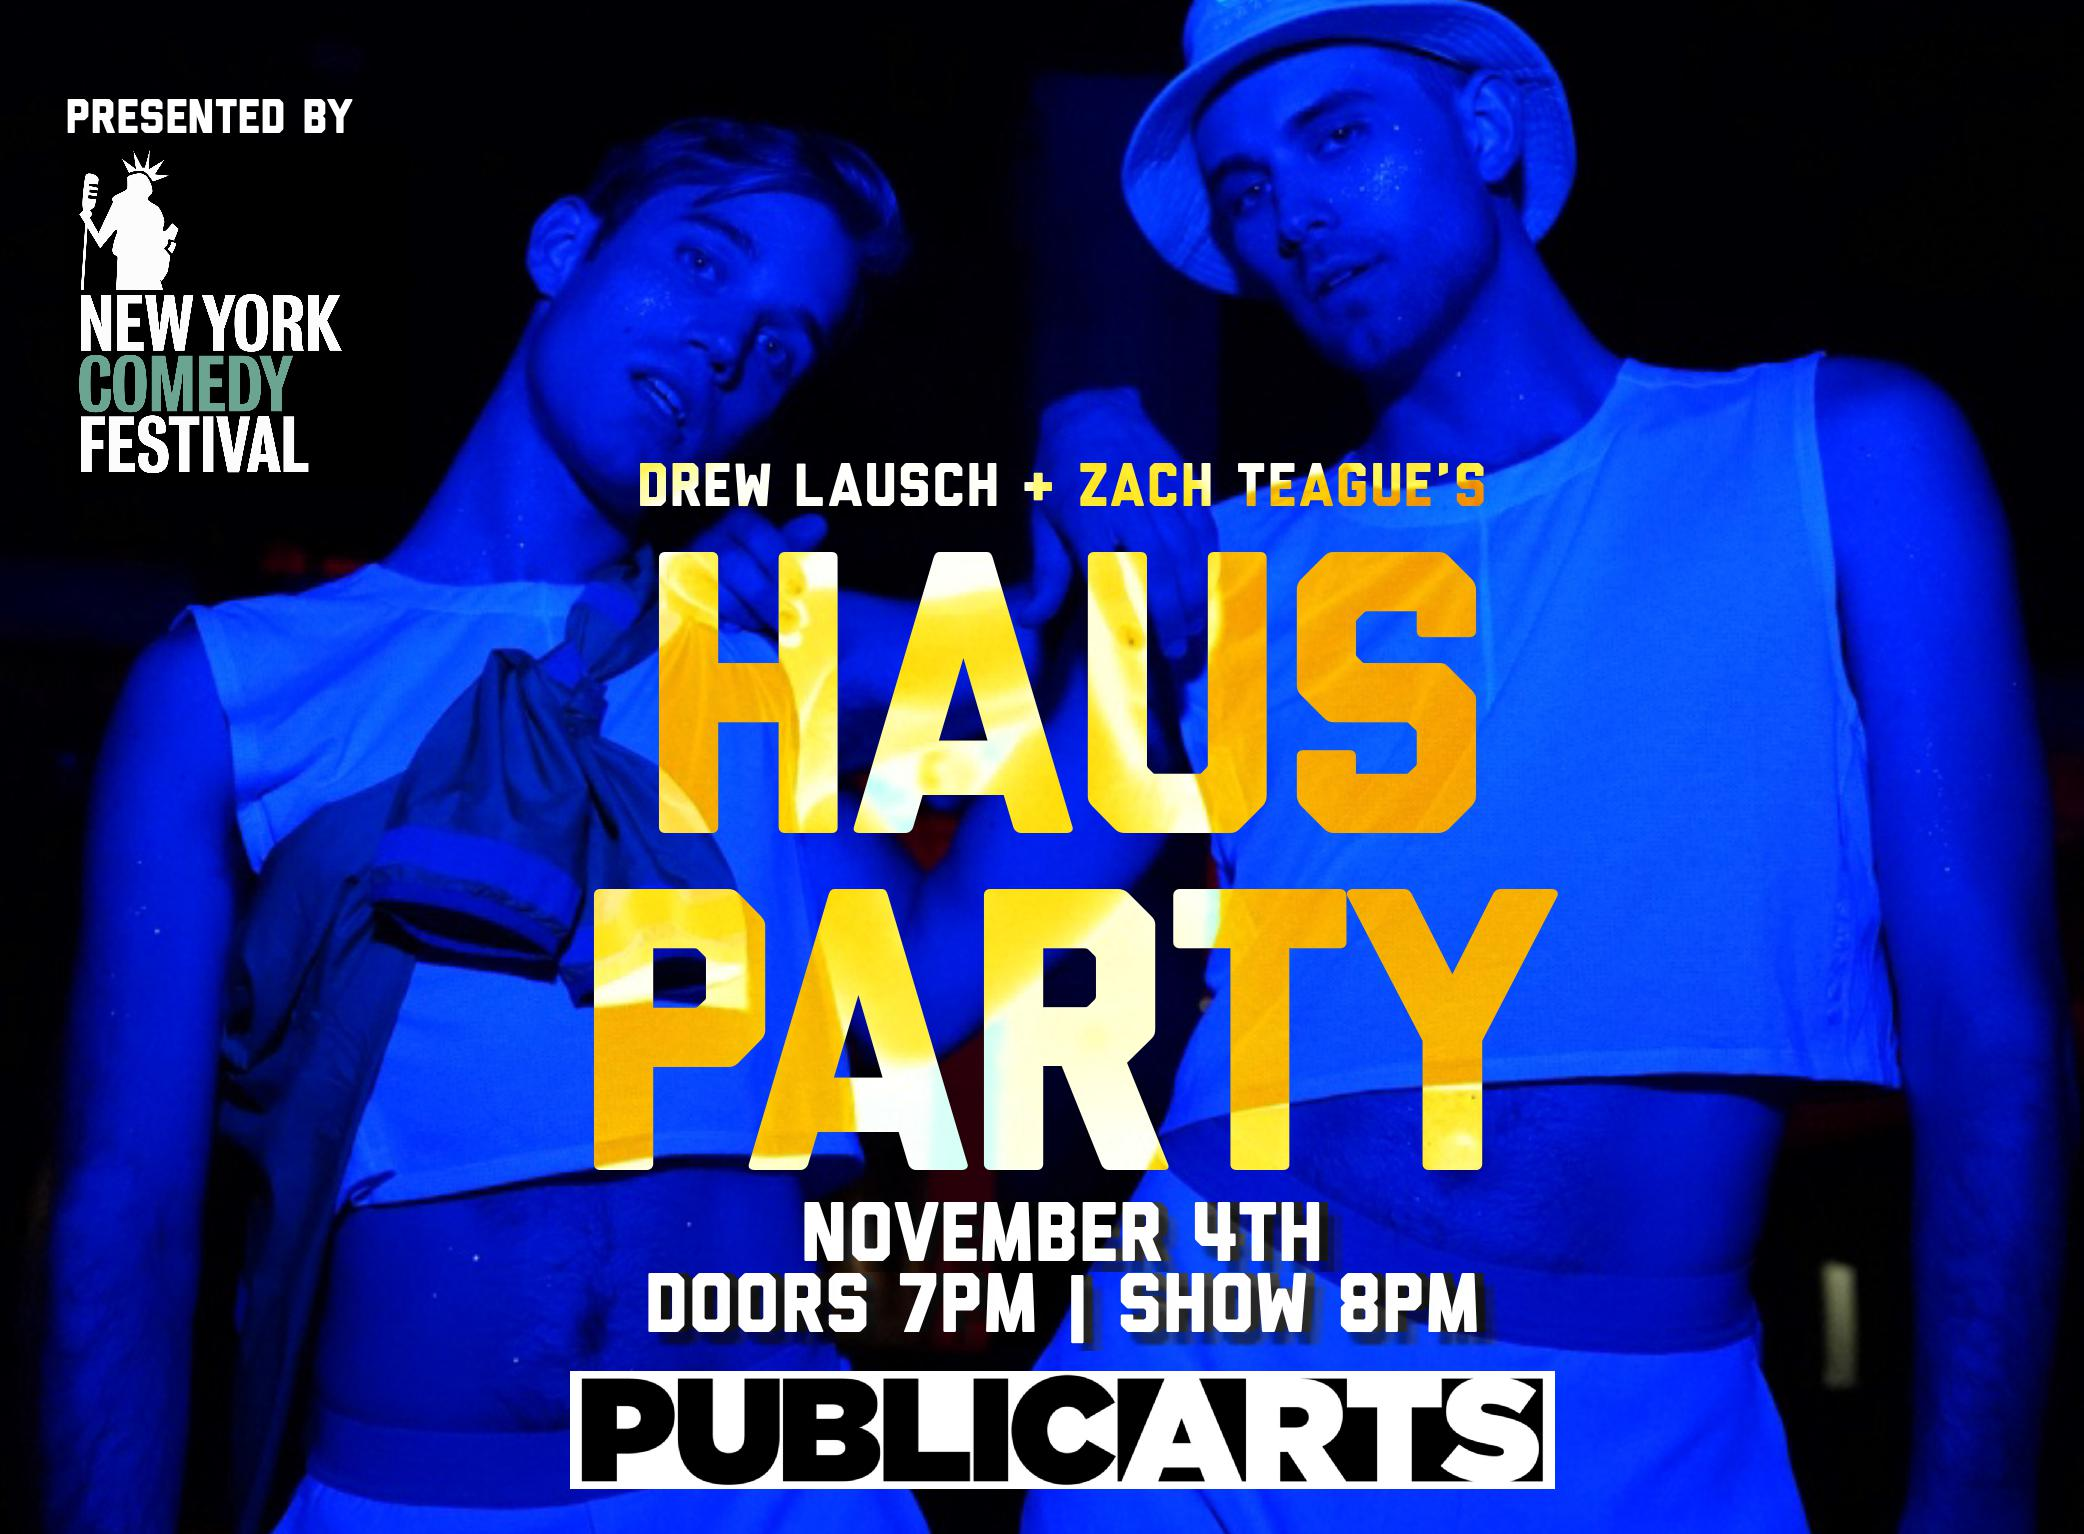 haus party poster